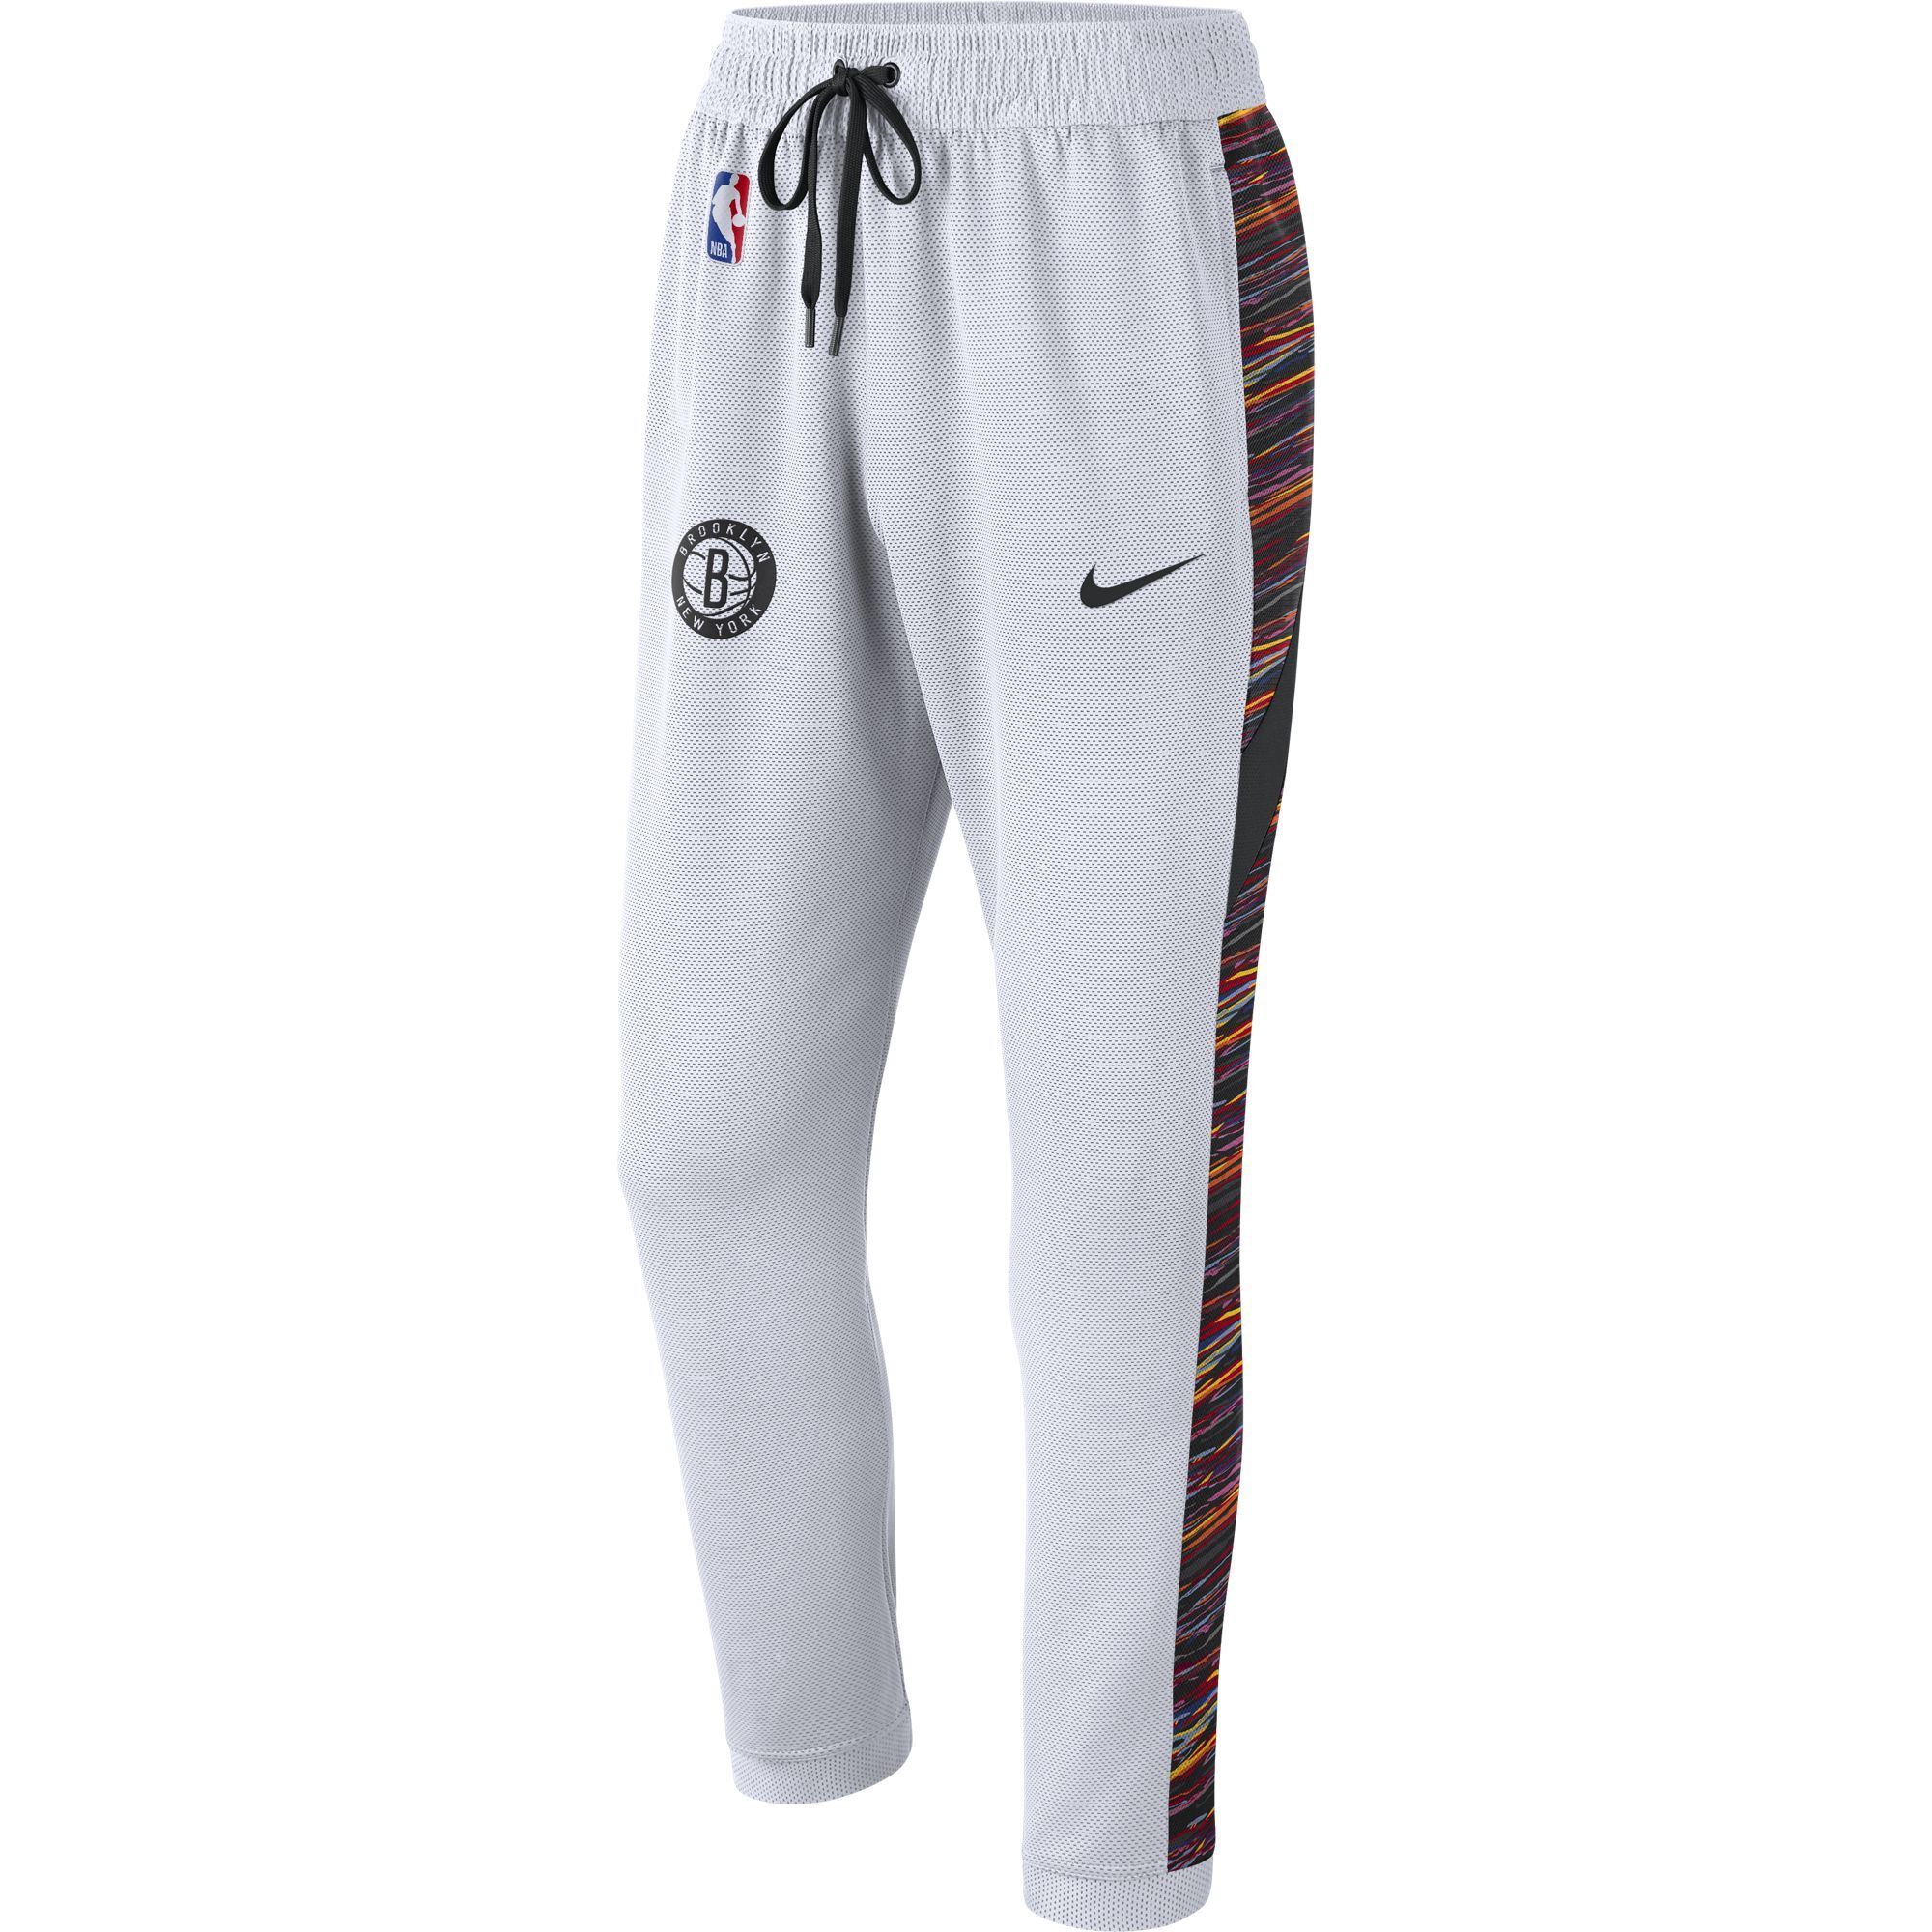 Earned Edition Showtime ThermaFlex On Court Warm Up Pants